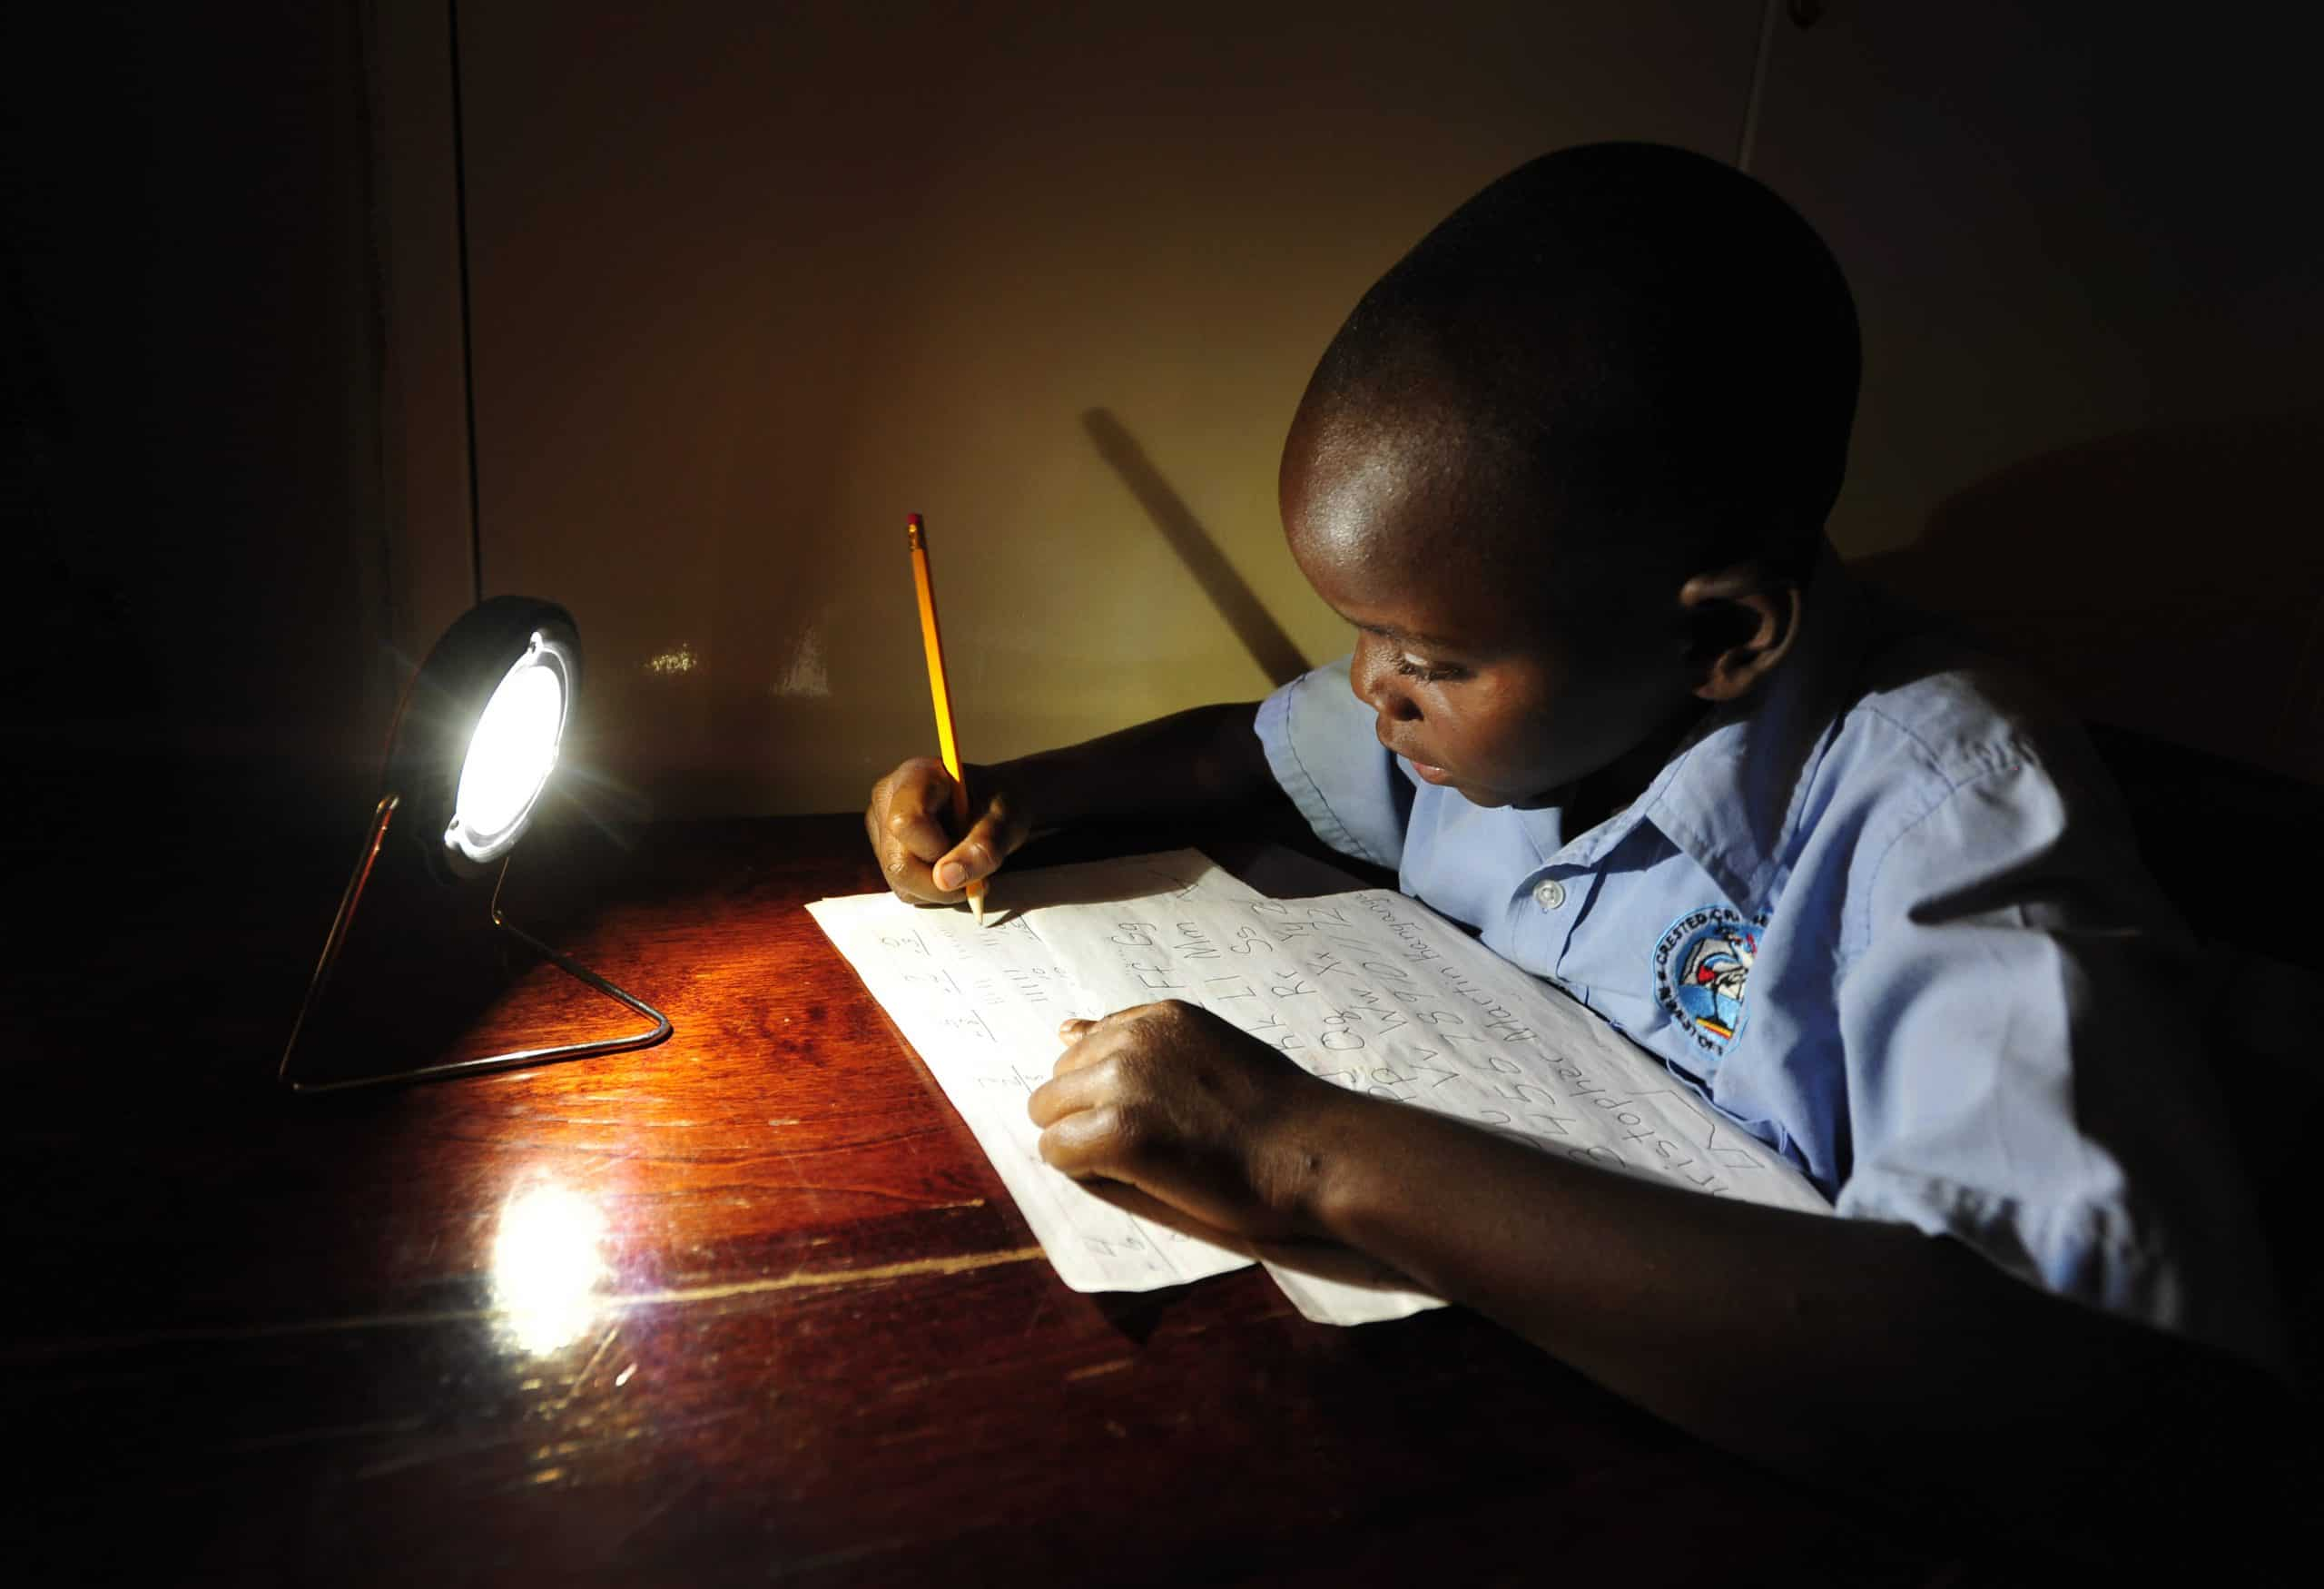 A boy writing by lamplight